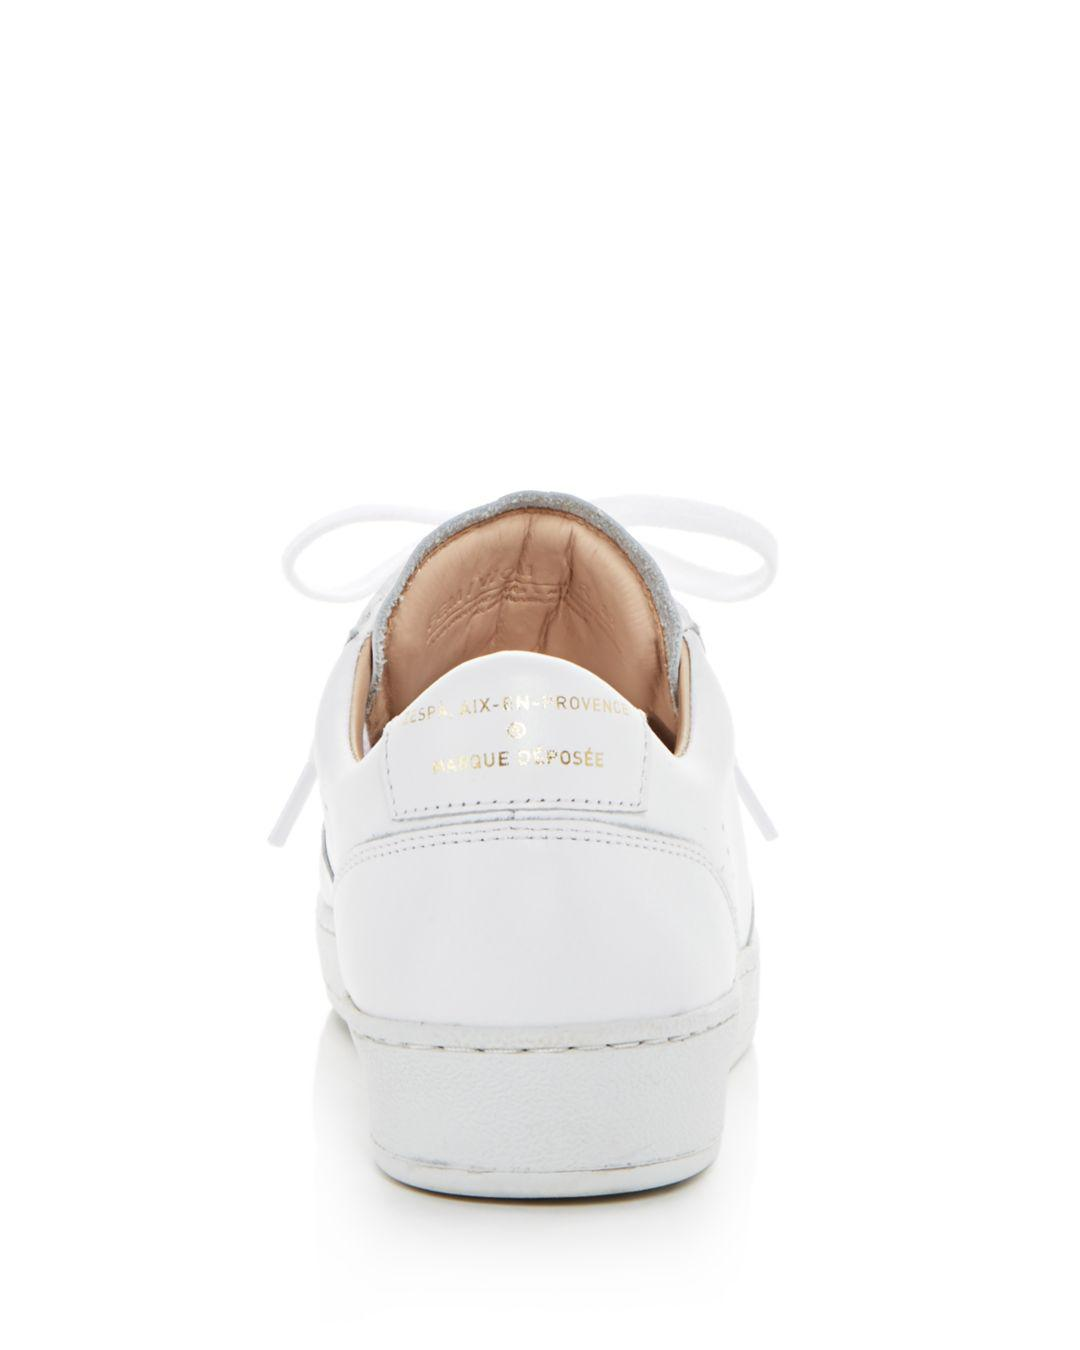 Zespà Women's Dessus Perforated Leather Lace Up Sneakers in White